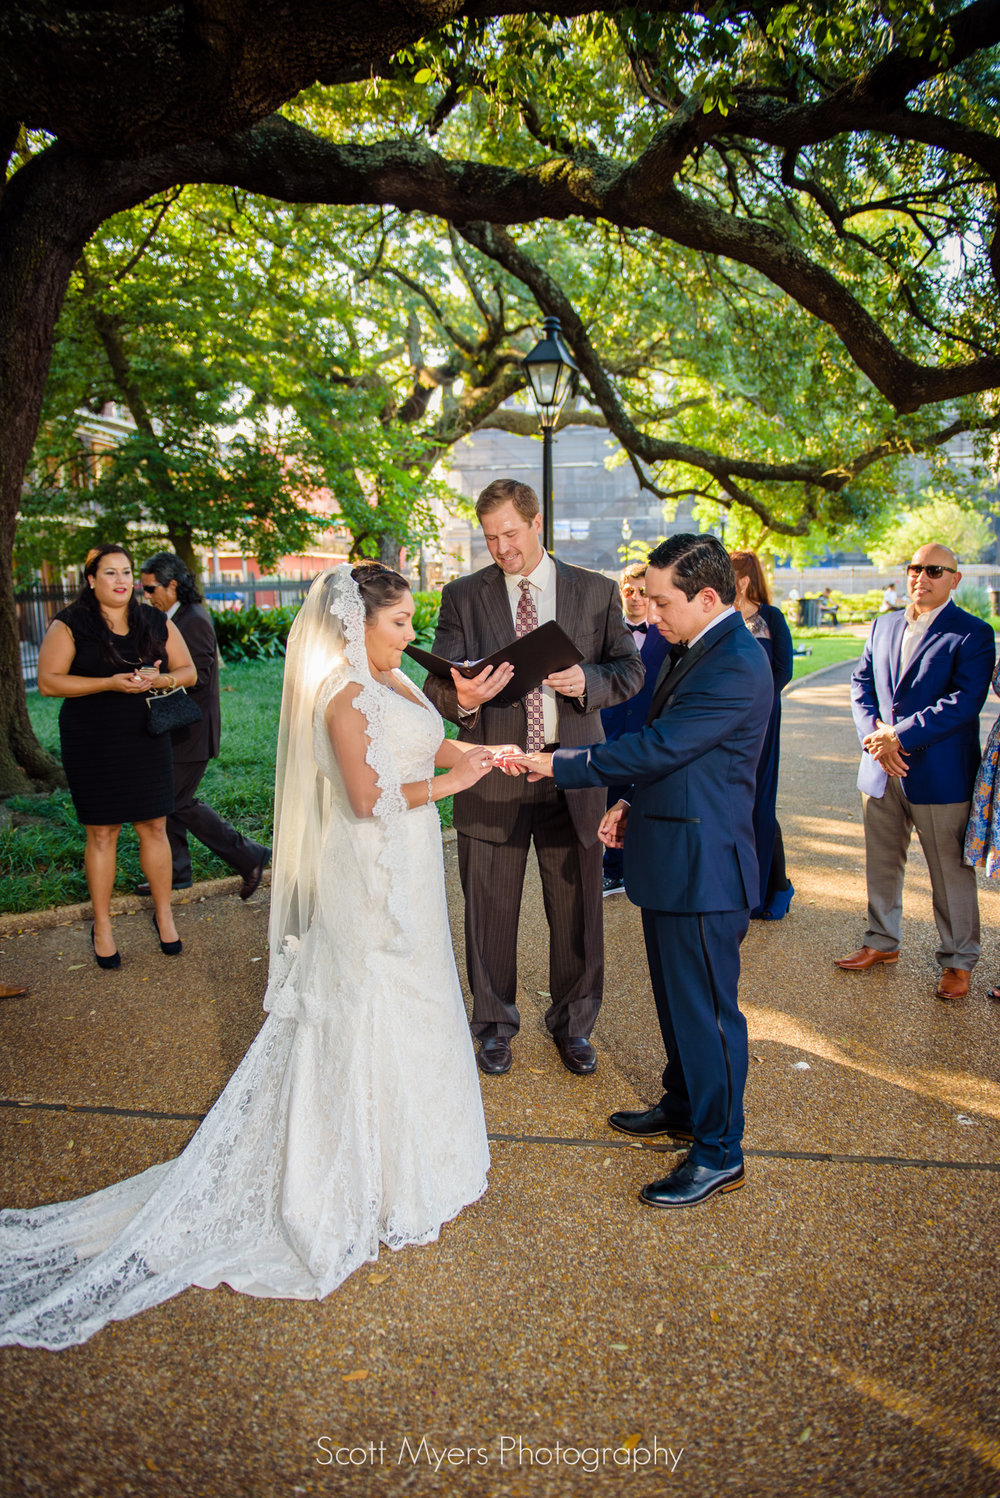 Scott_Myers_Wedding_New_Orleans_024.jpg